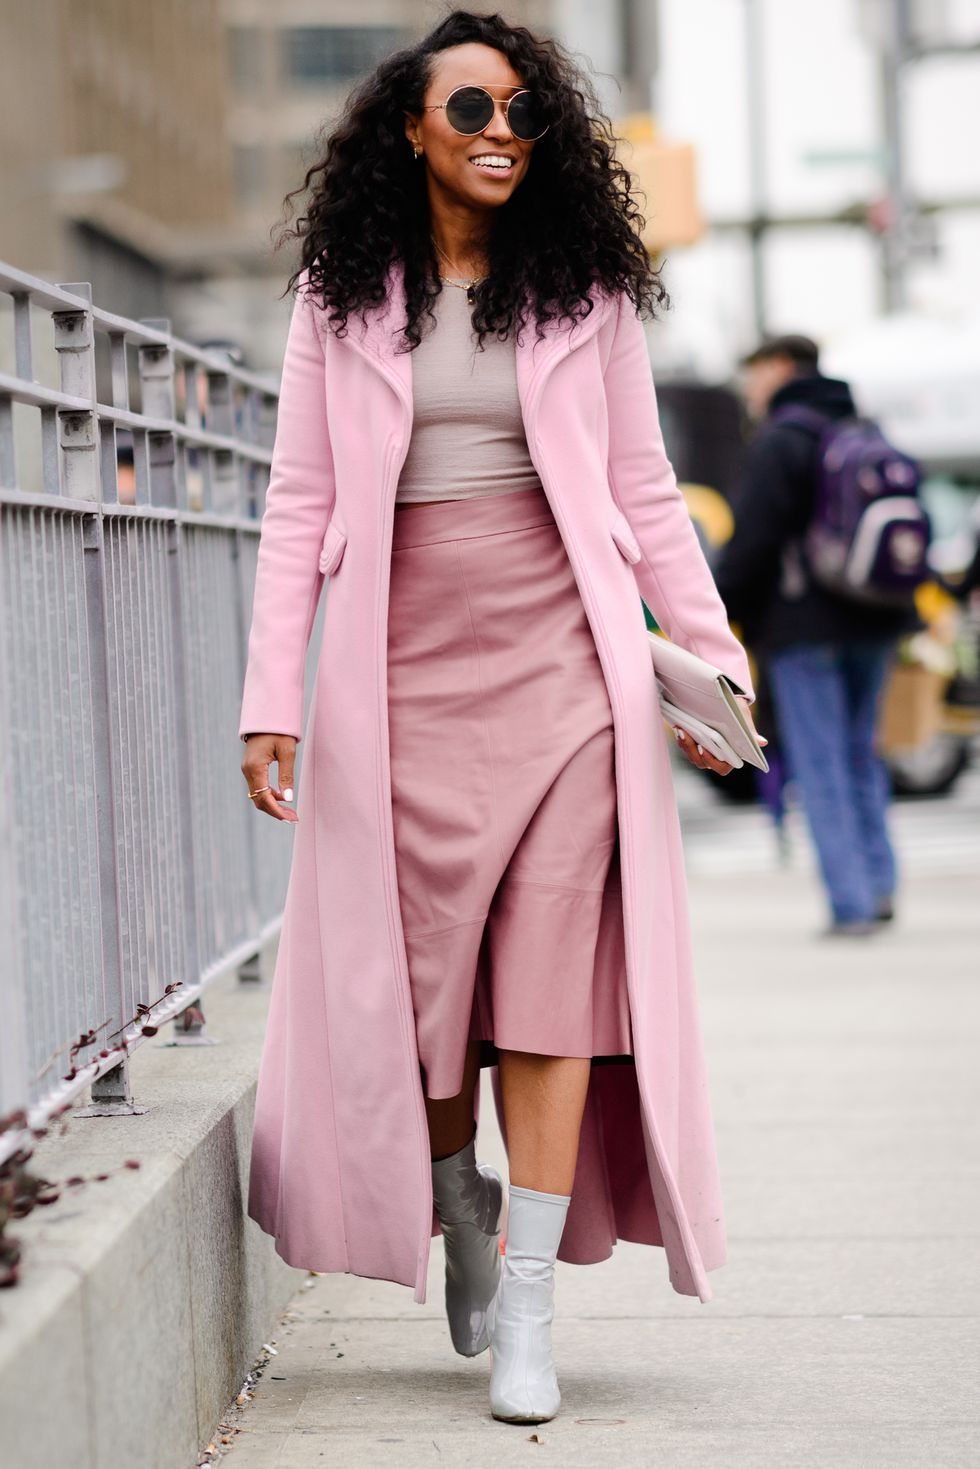 We're Totally Inspired By This Chic Monochromatic Look